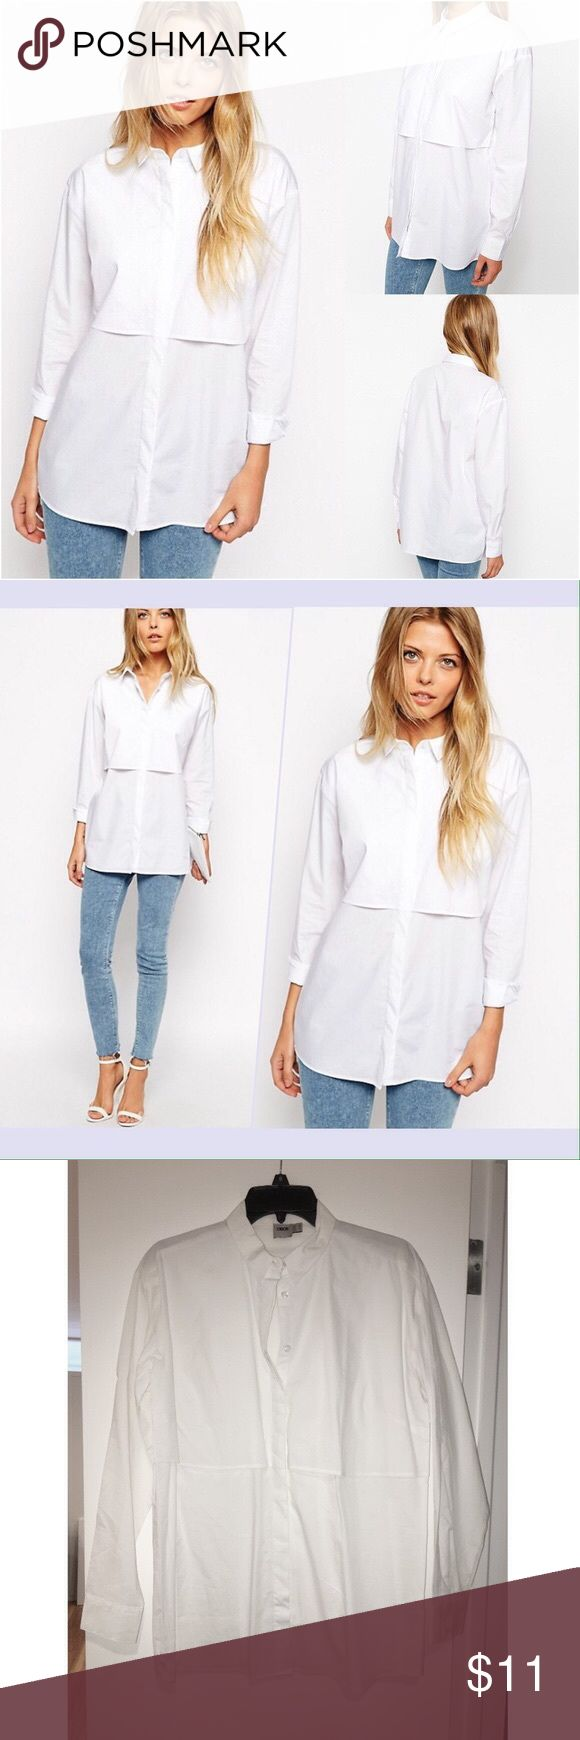 New ASOS Boyfriend White Shirt with Double Layer ASOS Boyfriend White Shirt with Double Layer. Size: US 6. Shirt by ASOS Collection. Basically new. Crisp woven fabric, Classic point collar, Double layered design, Button down front, Relaxed boyfriend fit , Machine wash, 100% Cotton . ASOS Tops Button Down Shirts